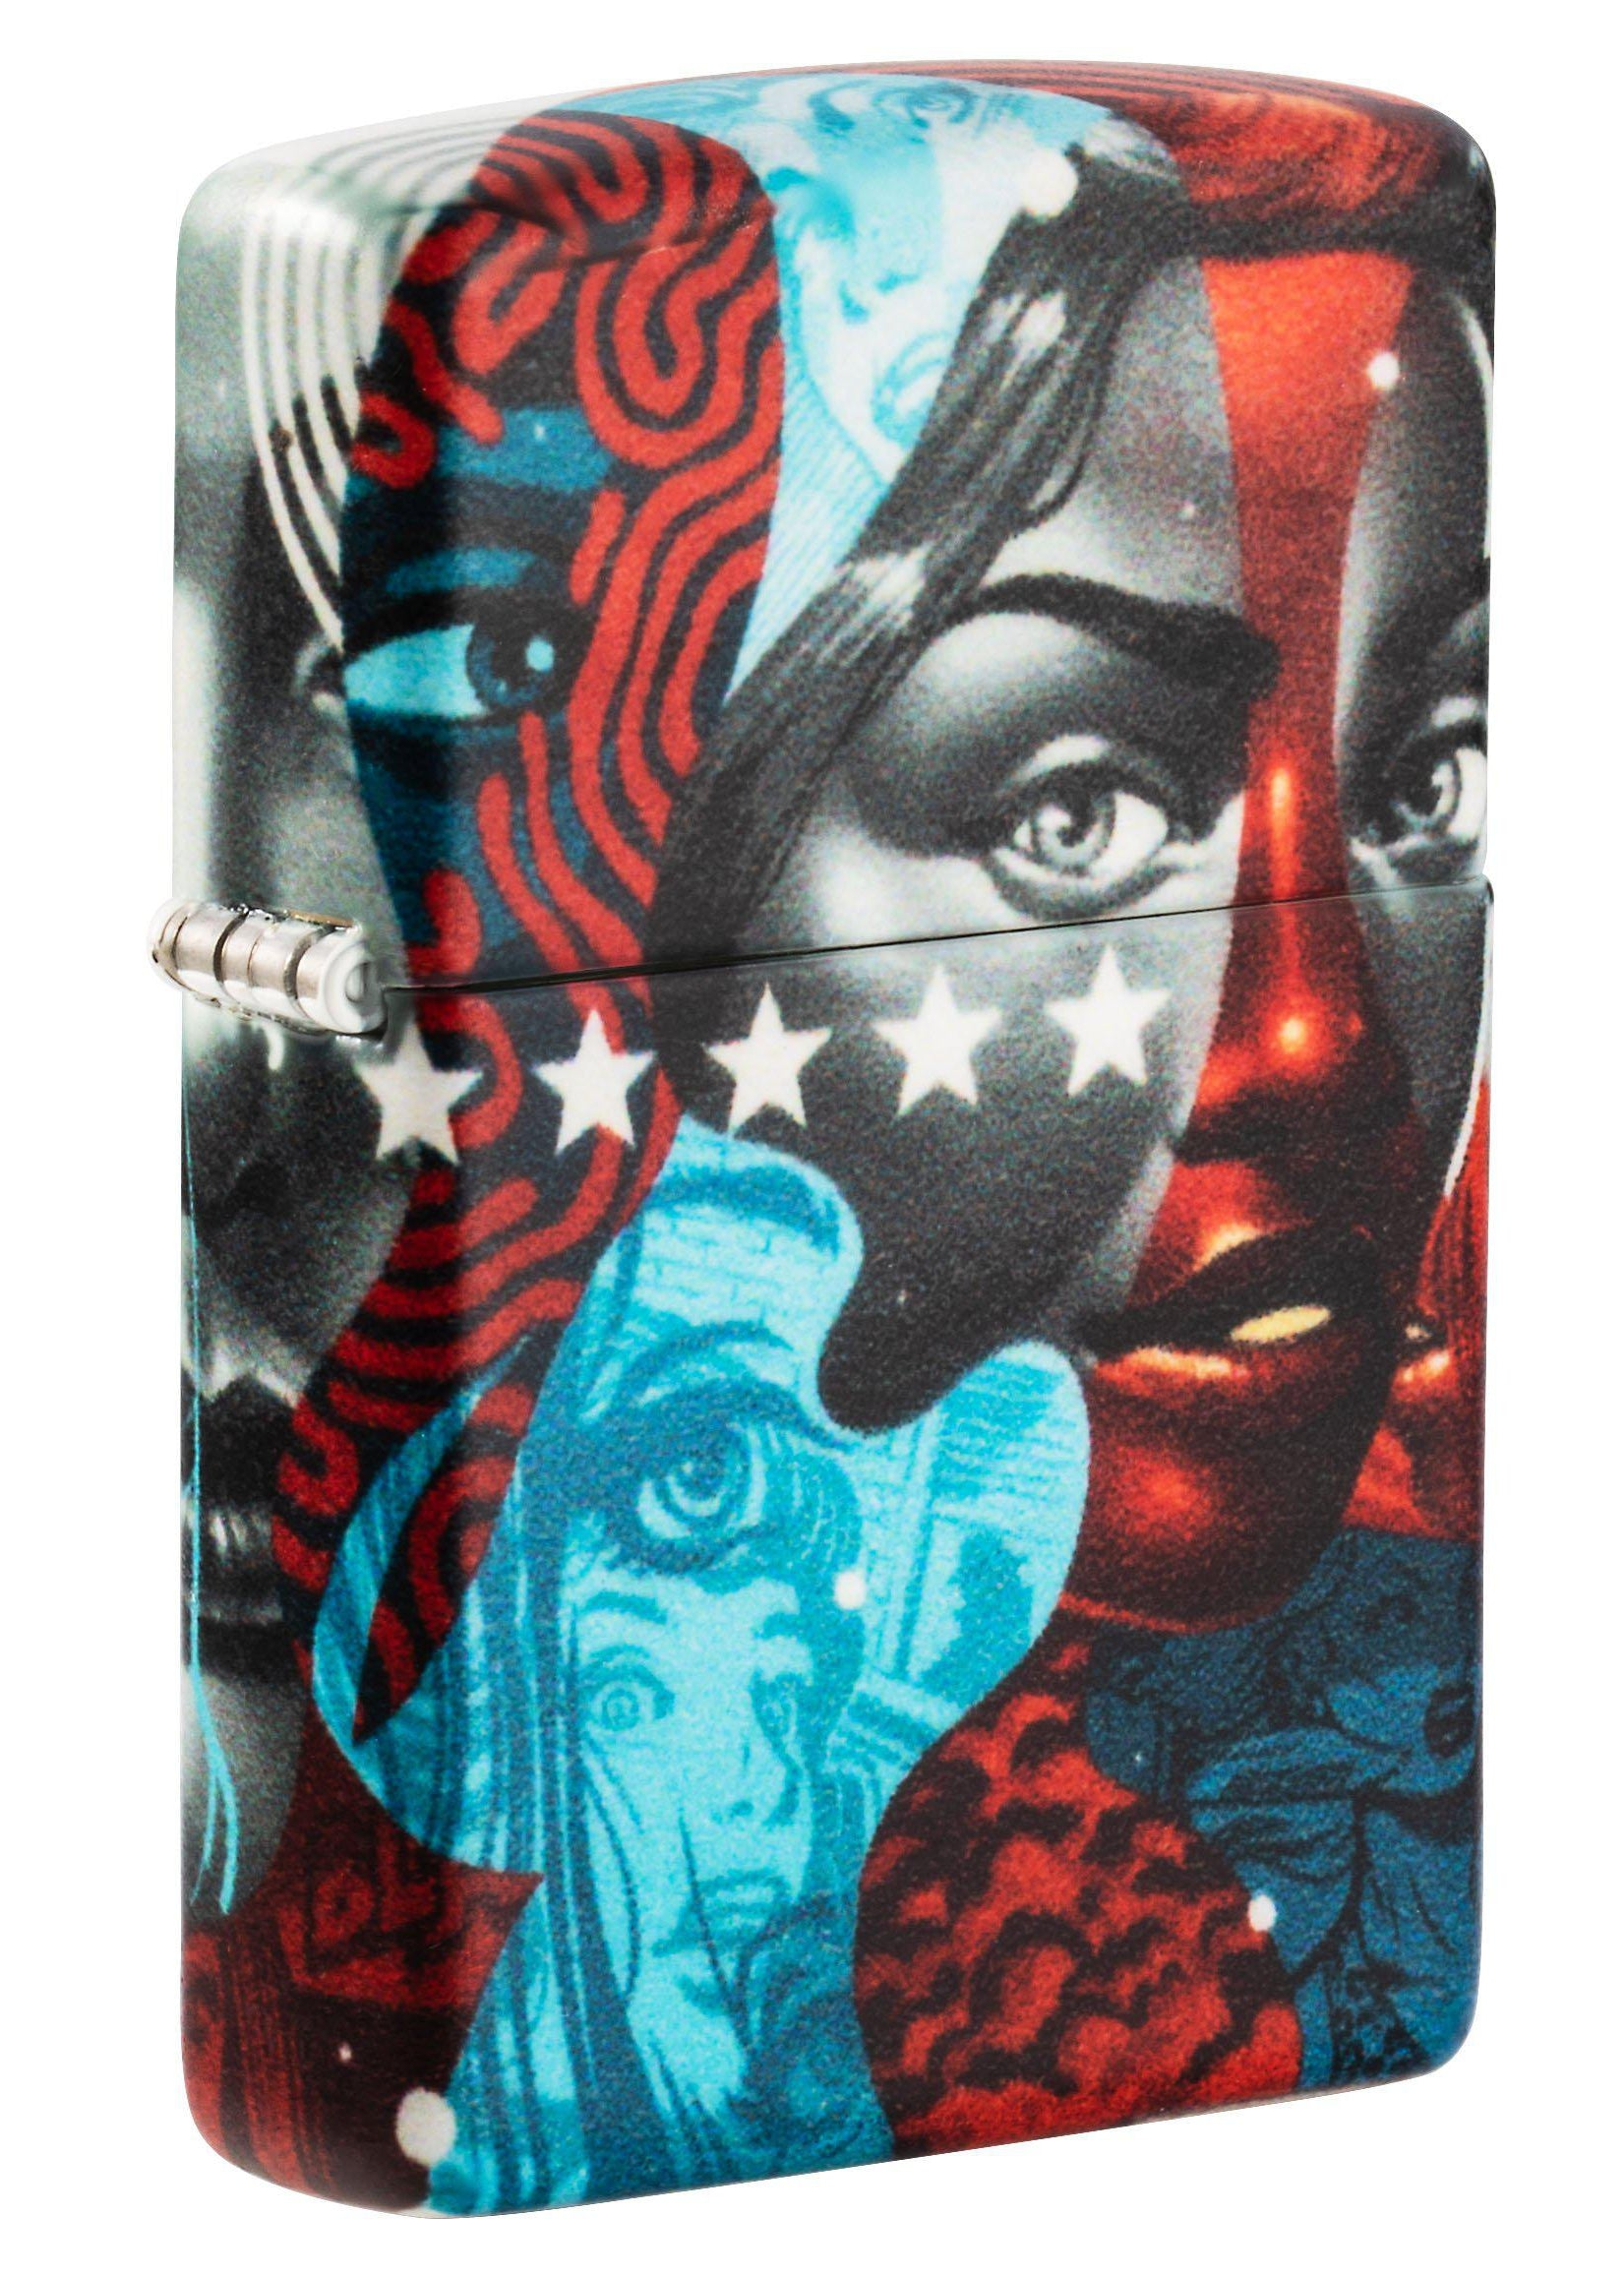 Zippo Lighter: American Power by Tristan Eaton - 540 Color 49393